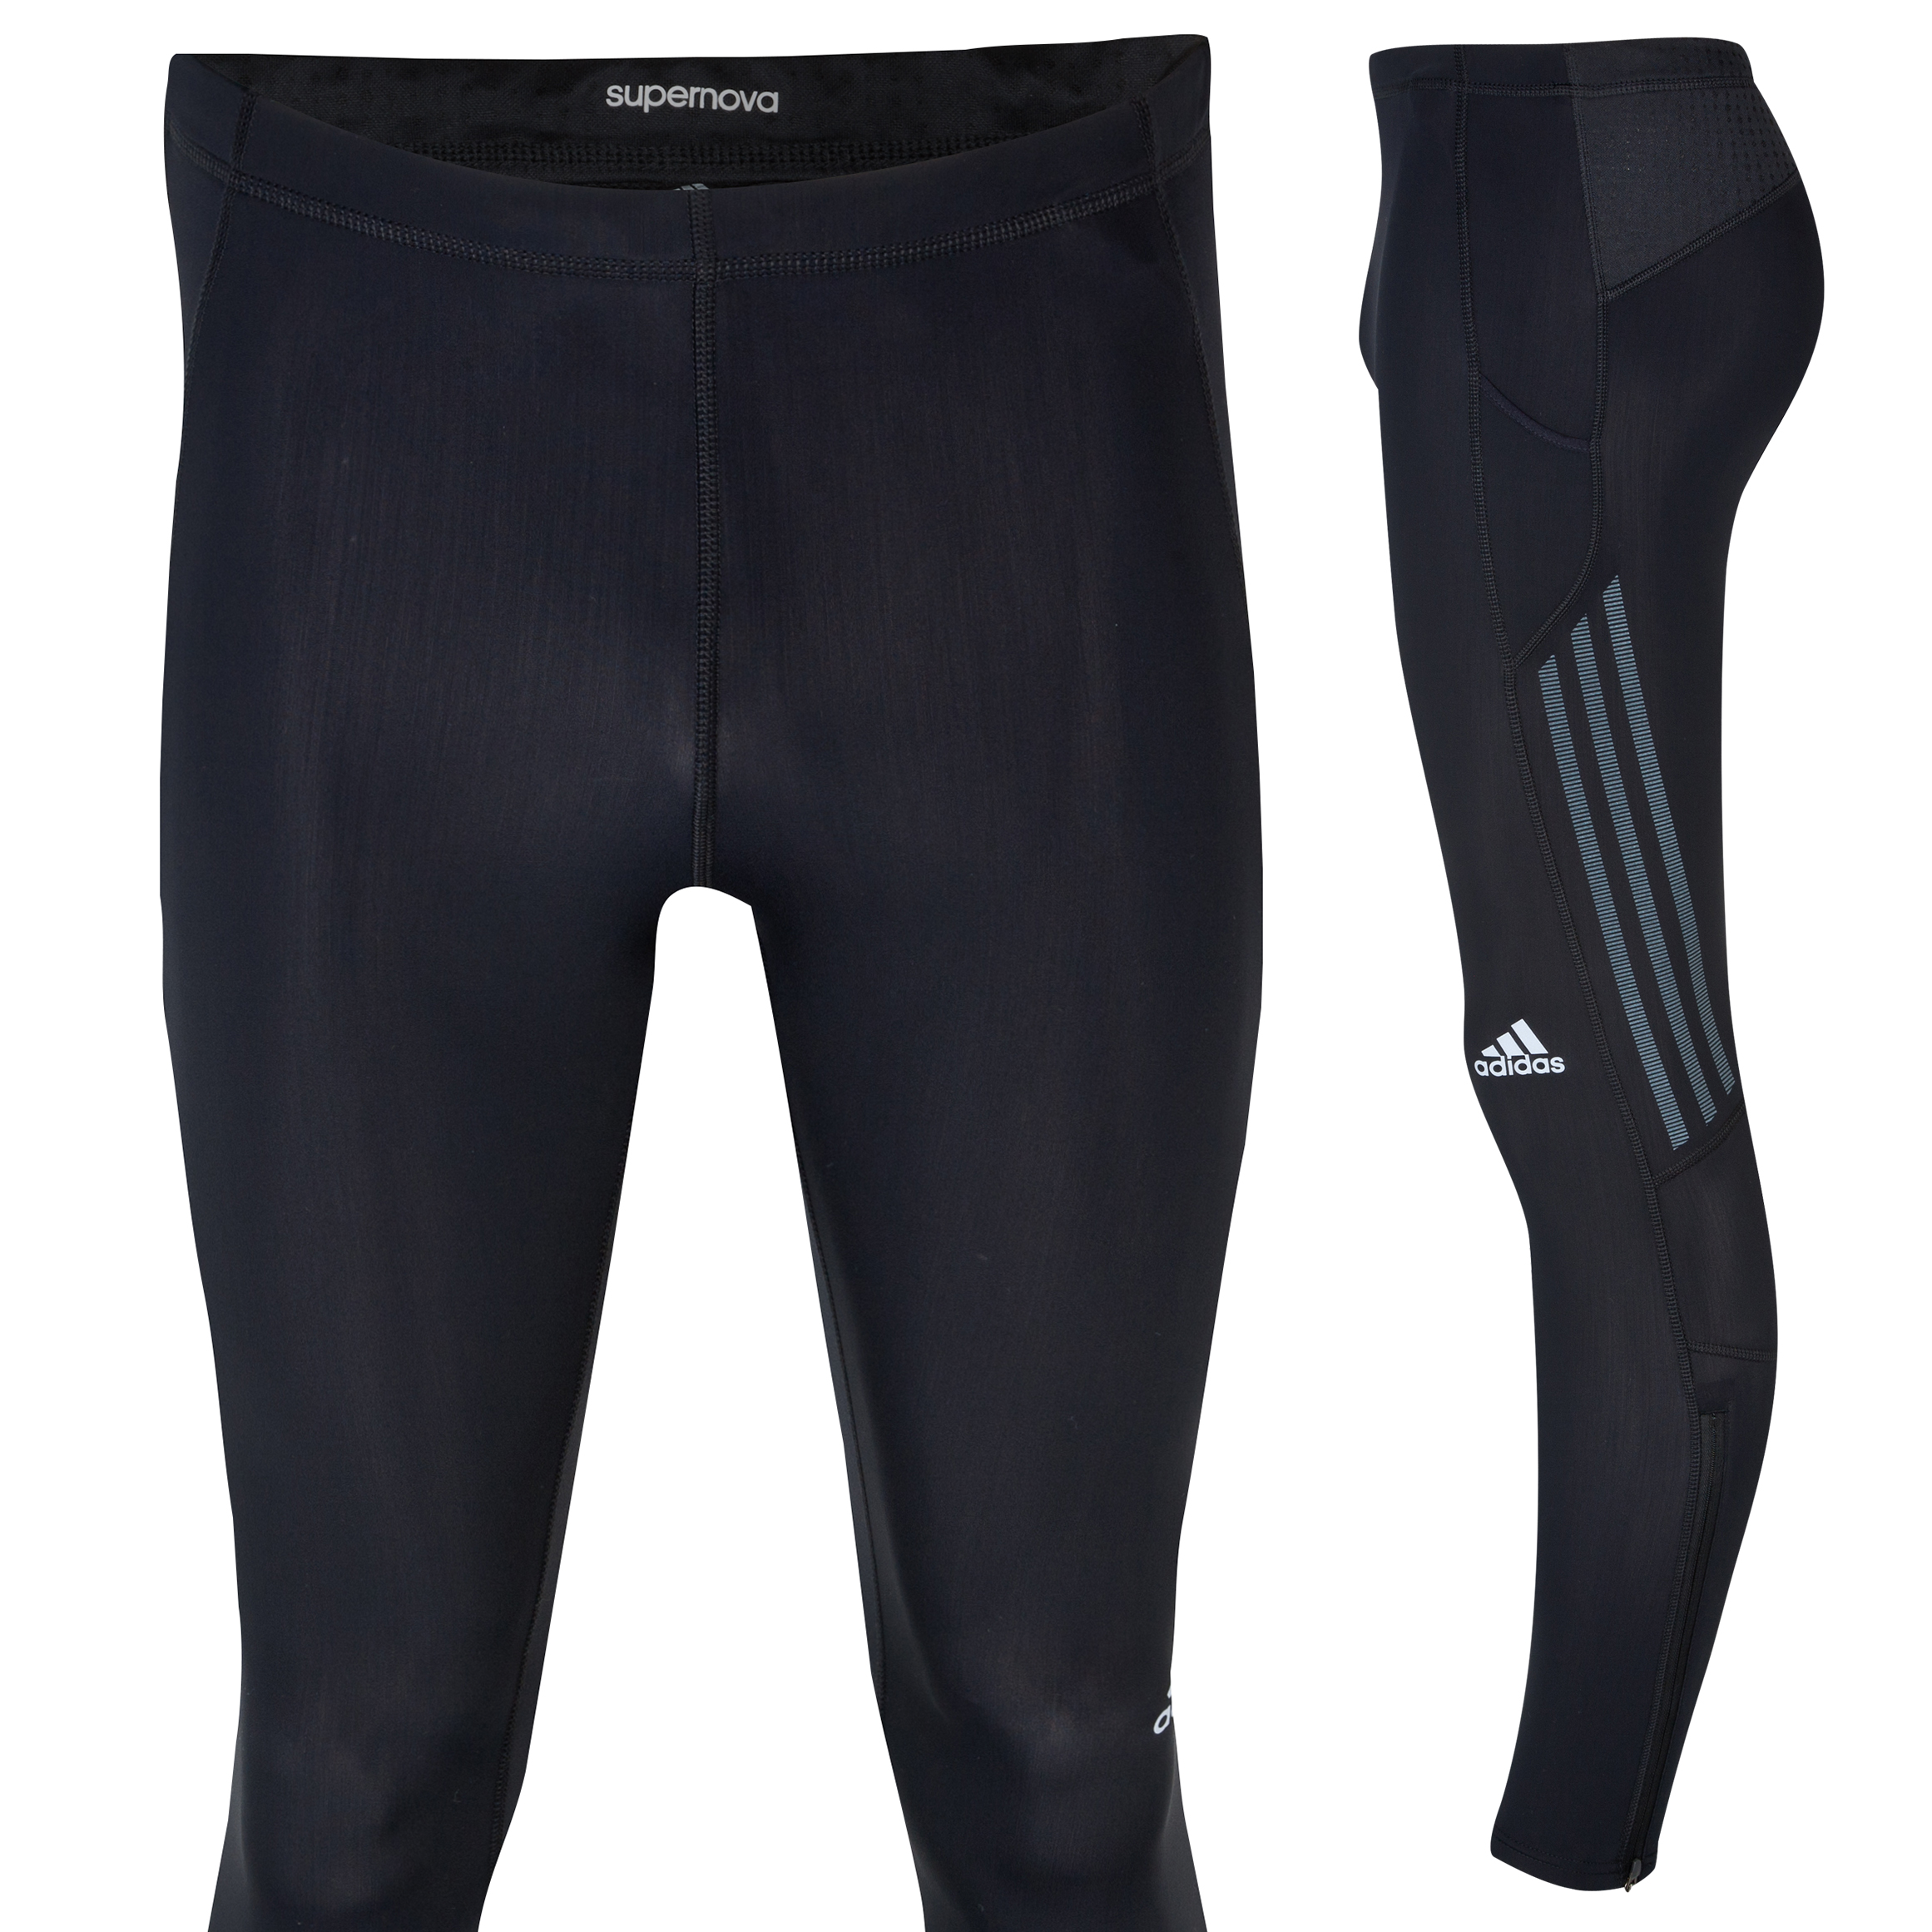 Adidas Supernova Long Tights - Black/Tech Onix